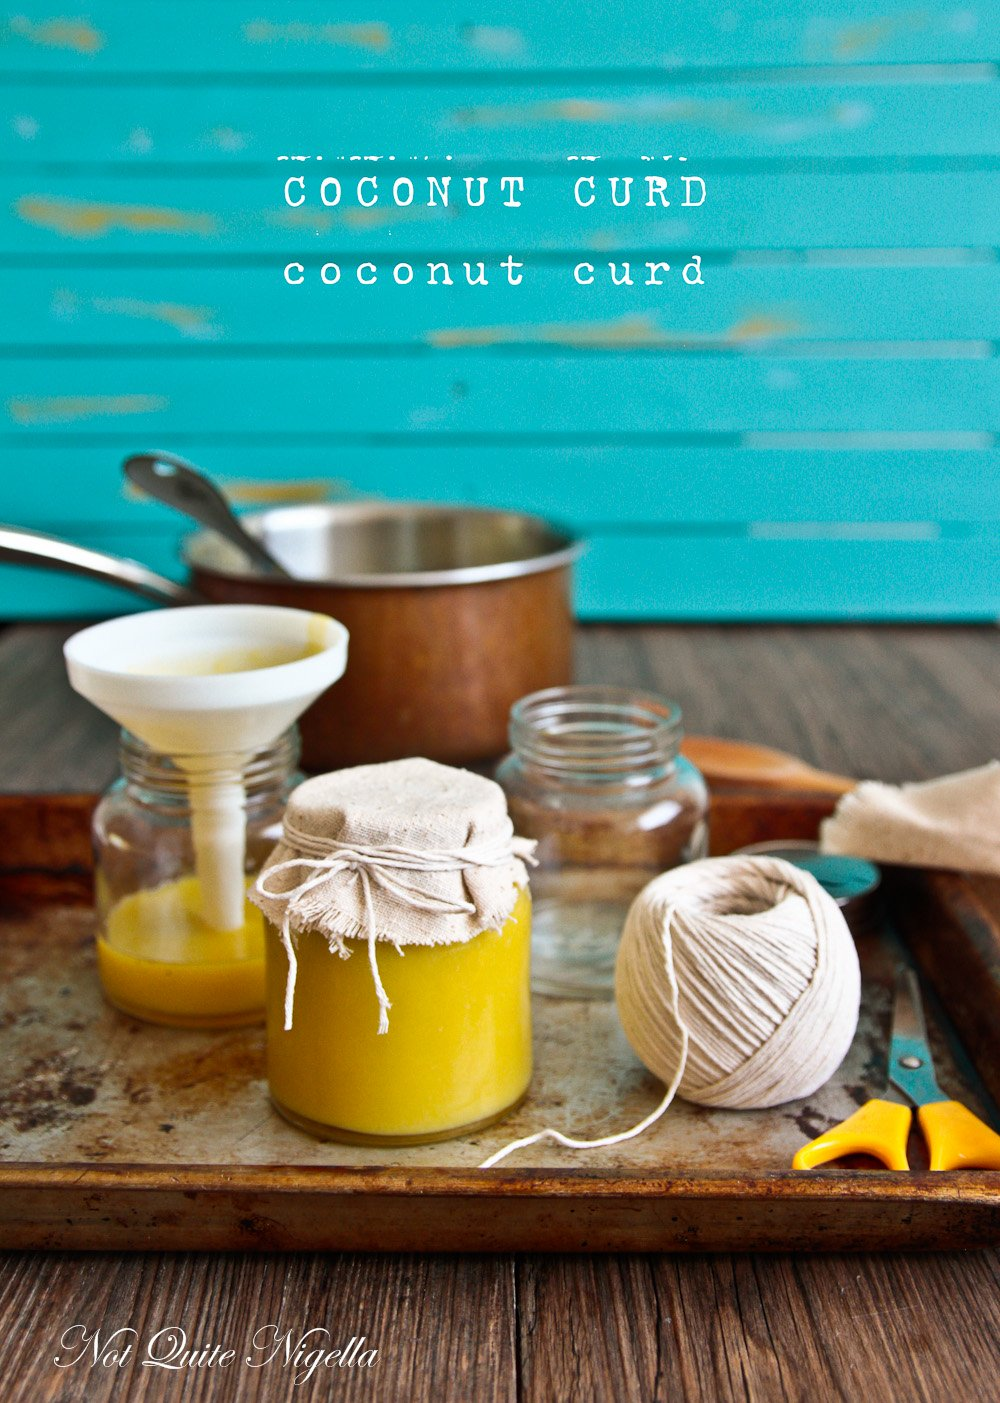 Coconut Curd